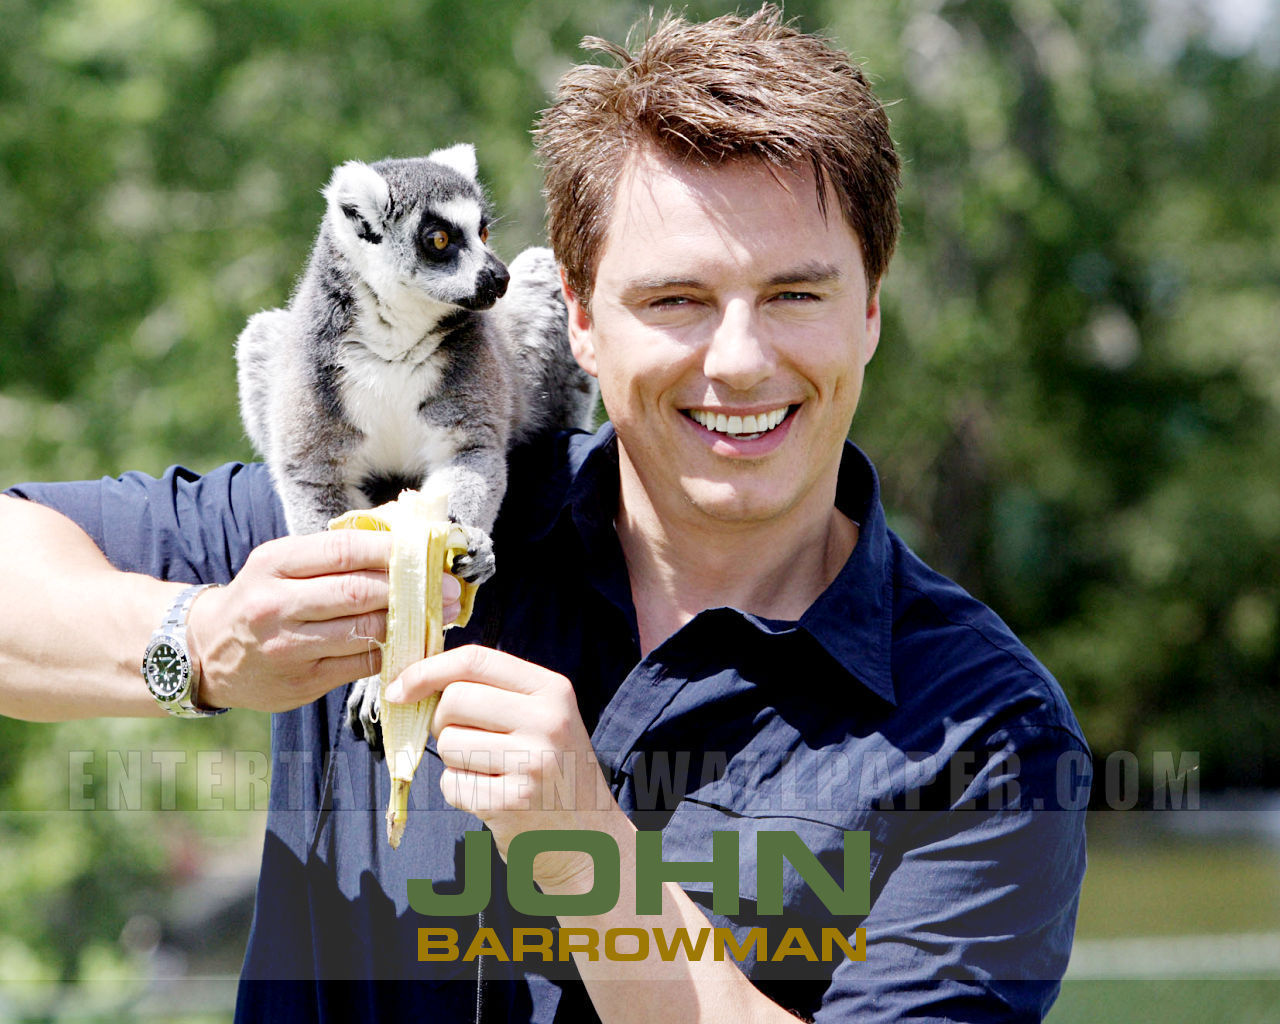 John Barrowman Wallpapers John Barrowman John Barrowman Wallpaper Fanpop